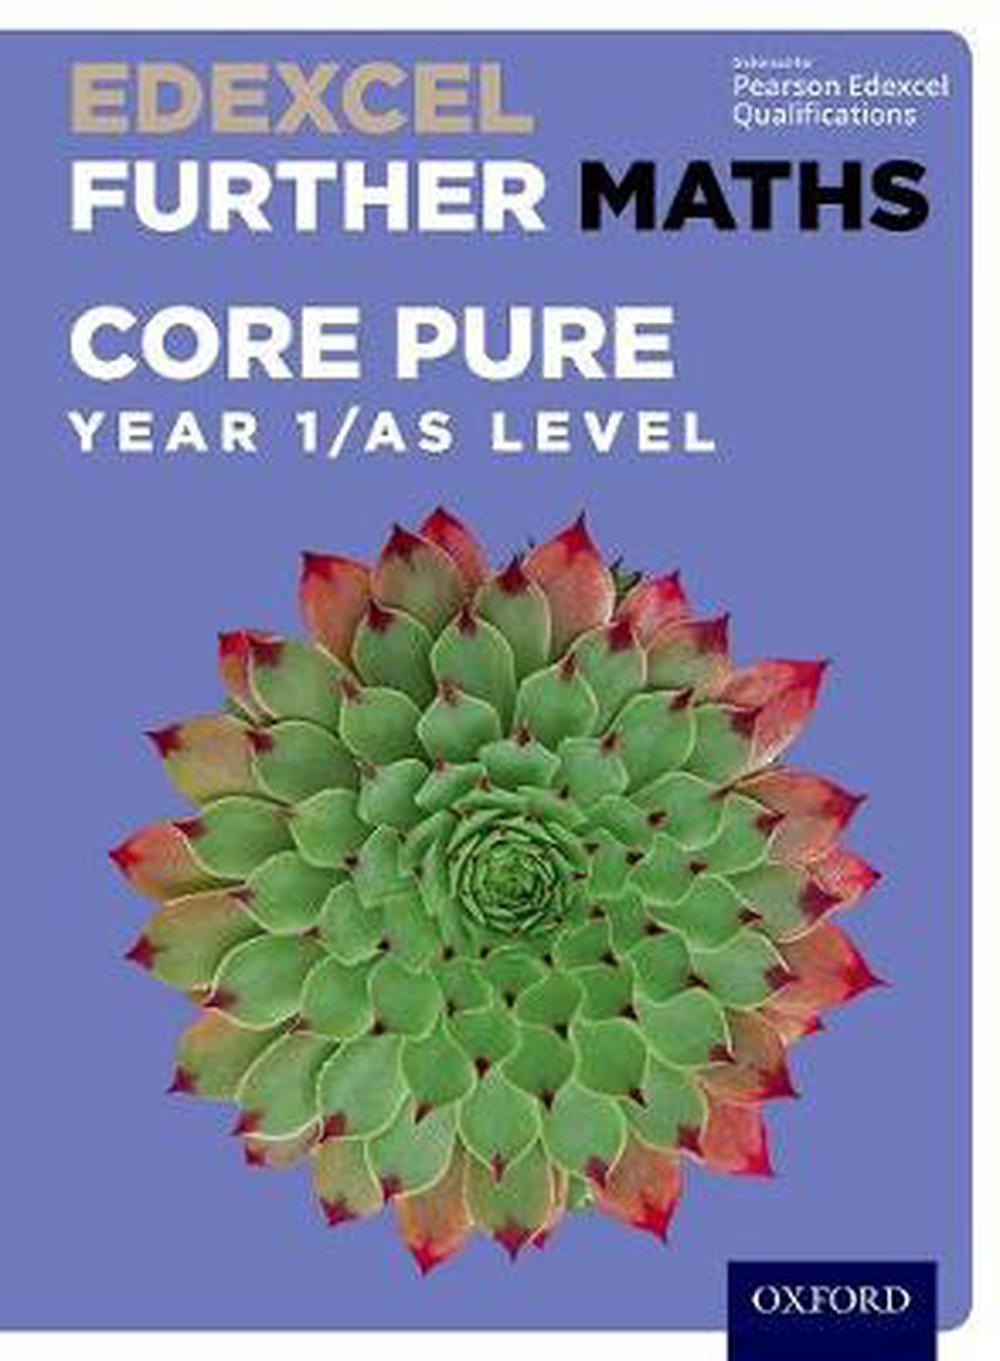 Edexcel Further Maths: Core Pure Year 1/as Level Student Book